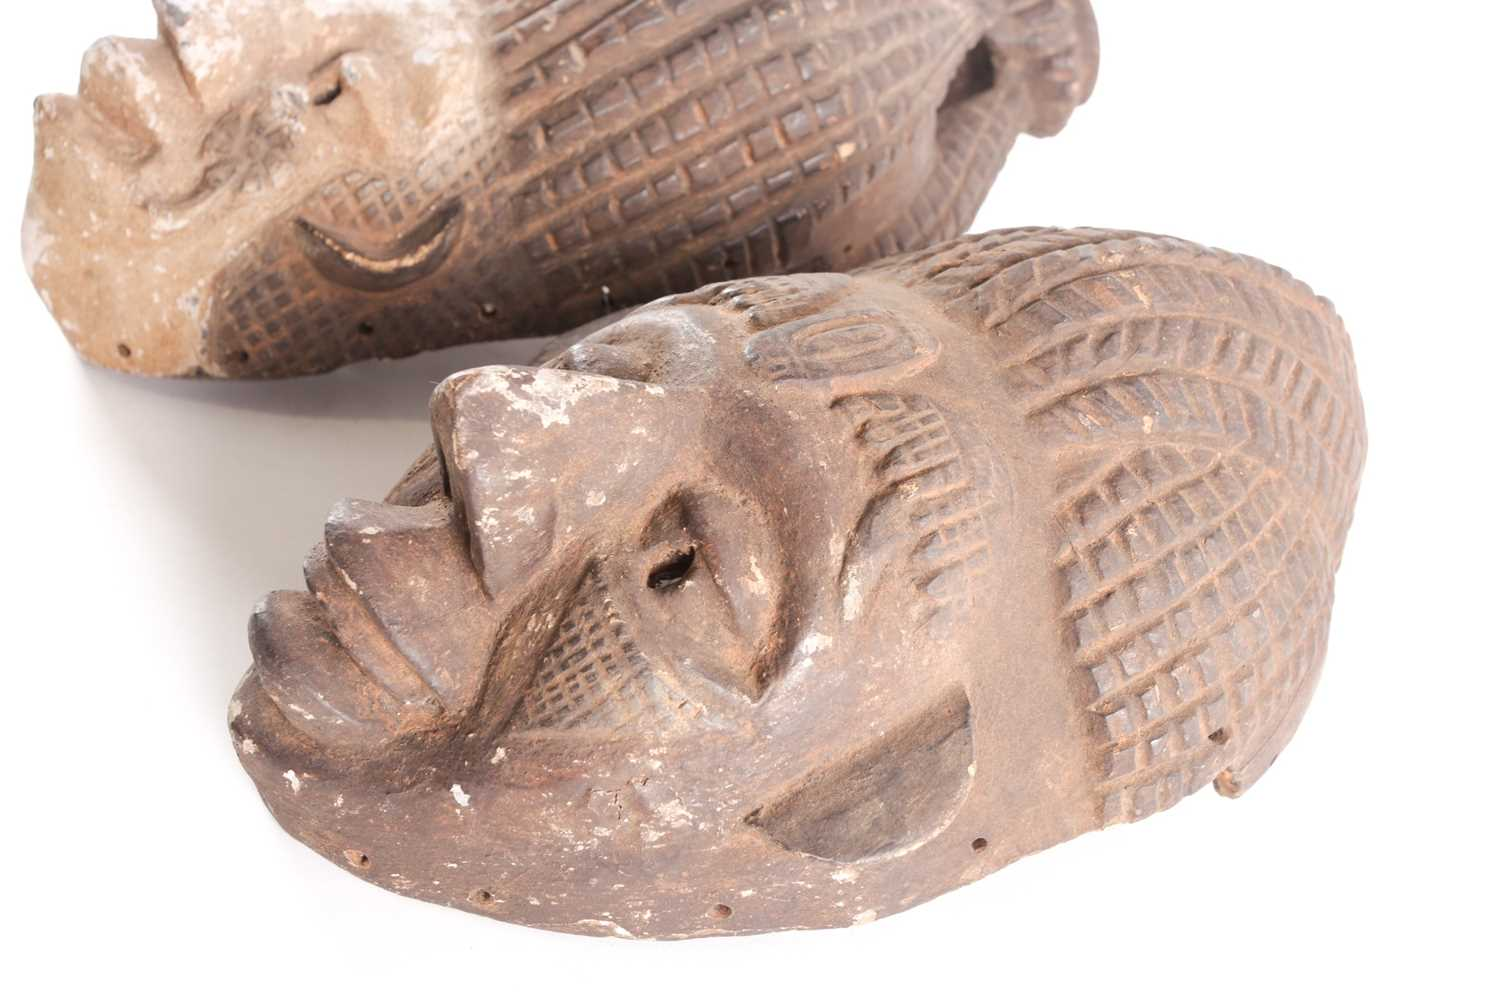 An Ibibio mask, Nigeria, with tall coiffure united at the top, the kaolin painted face with relief - Image 3 of 4